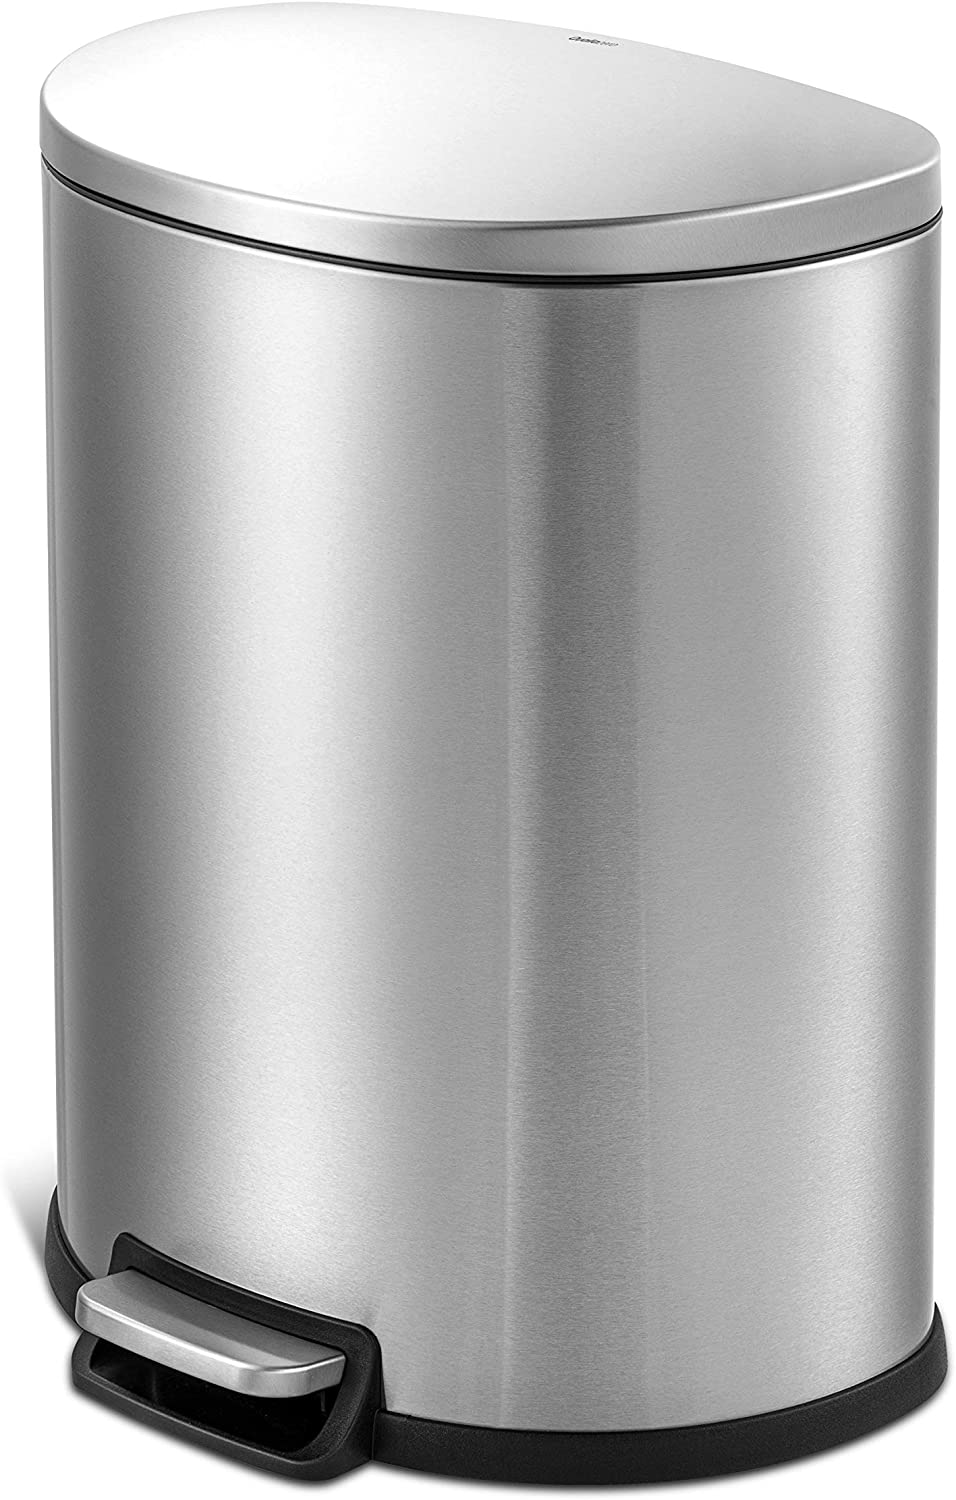 Challenge the lowest price of Japan ☆ QUALIAZERO 50L 13Gal Heavy Duty Comme Hands-Free Steel Excellence Stainless